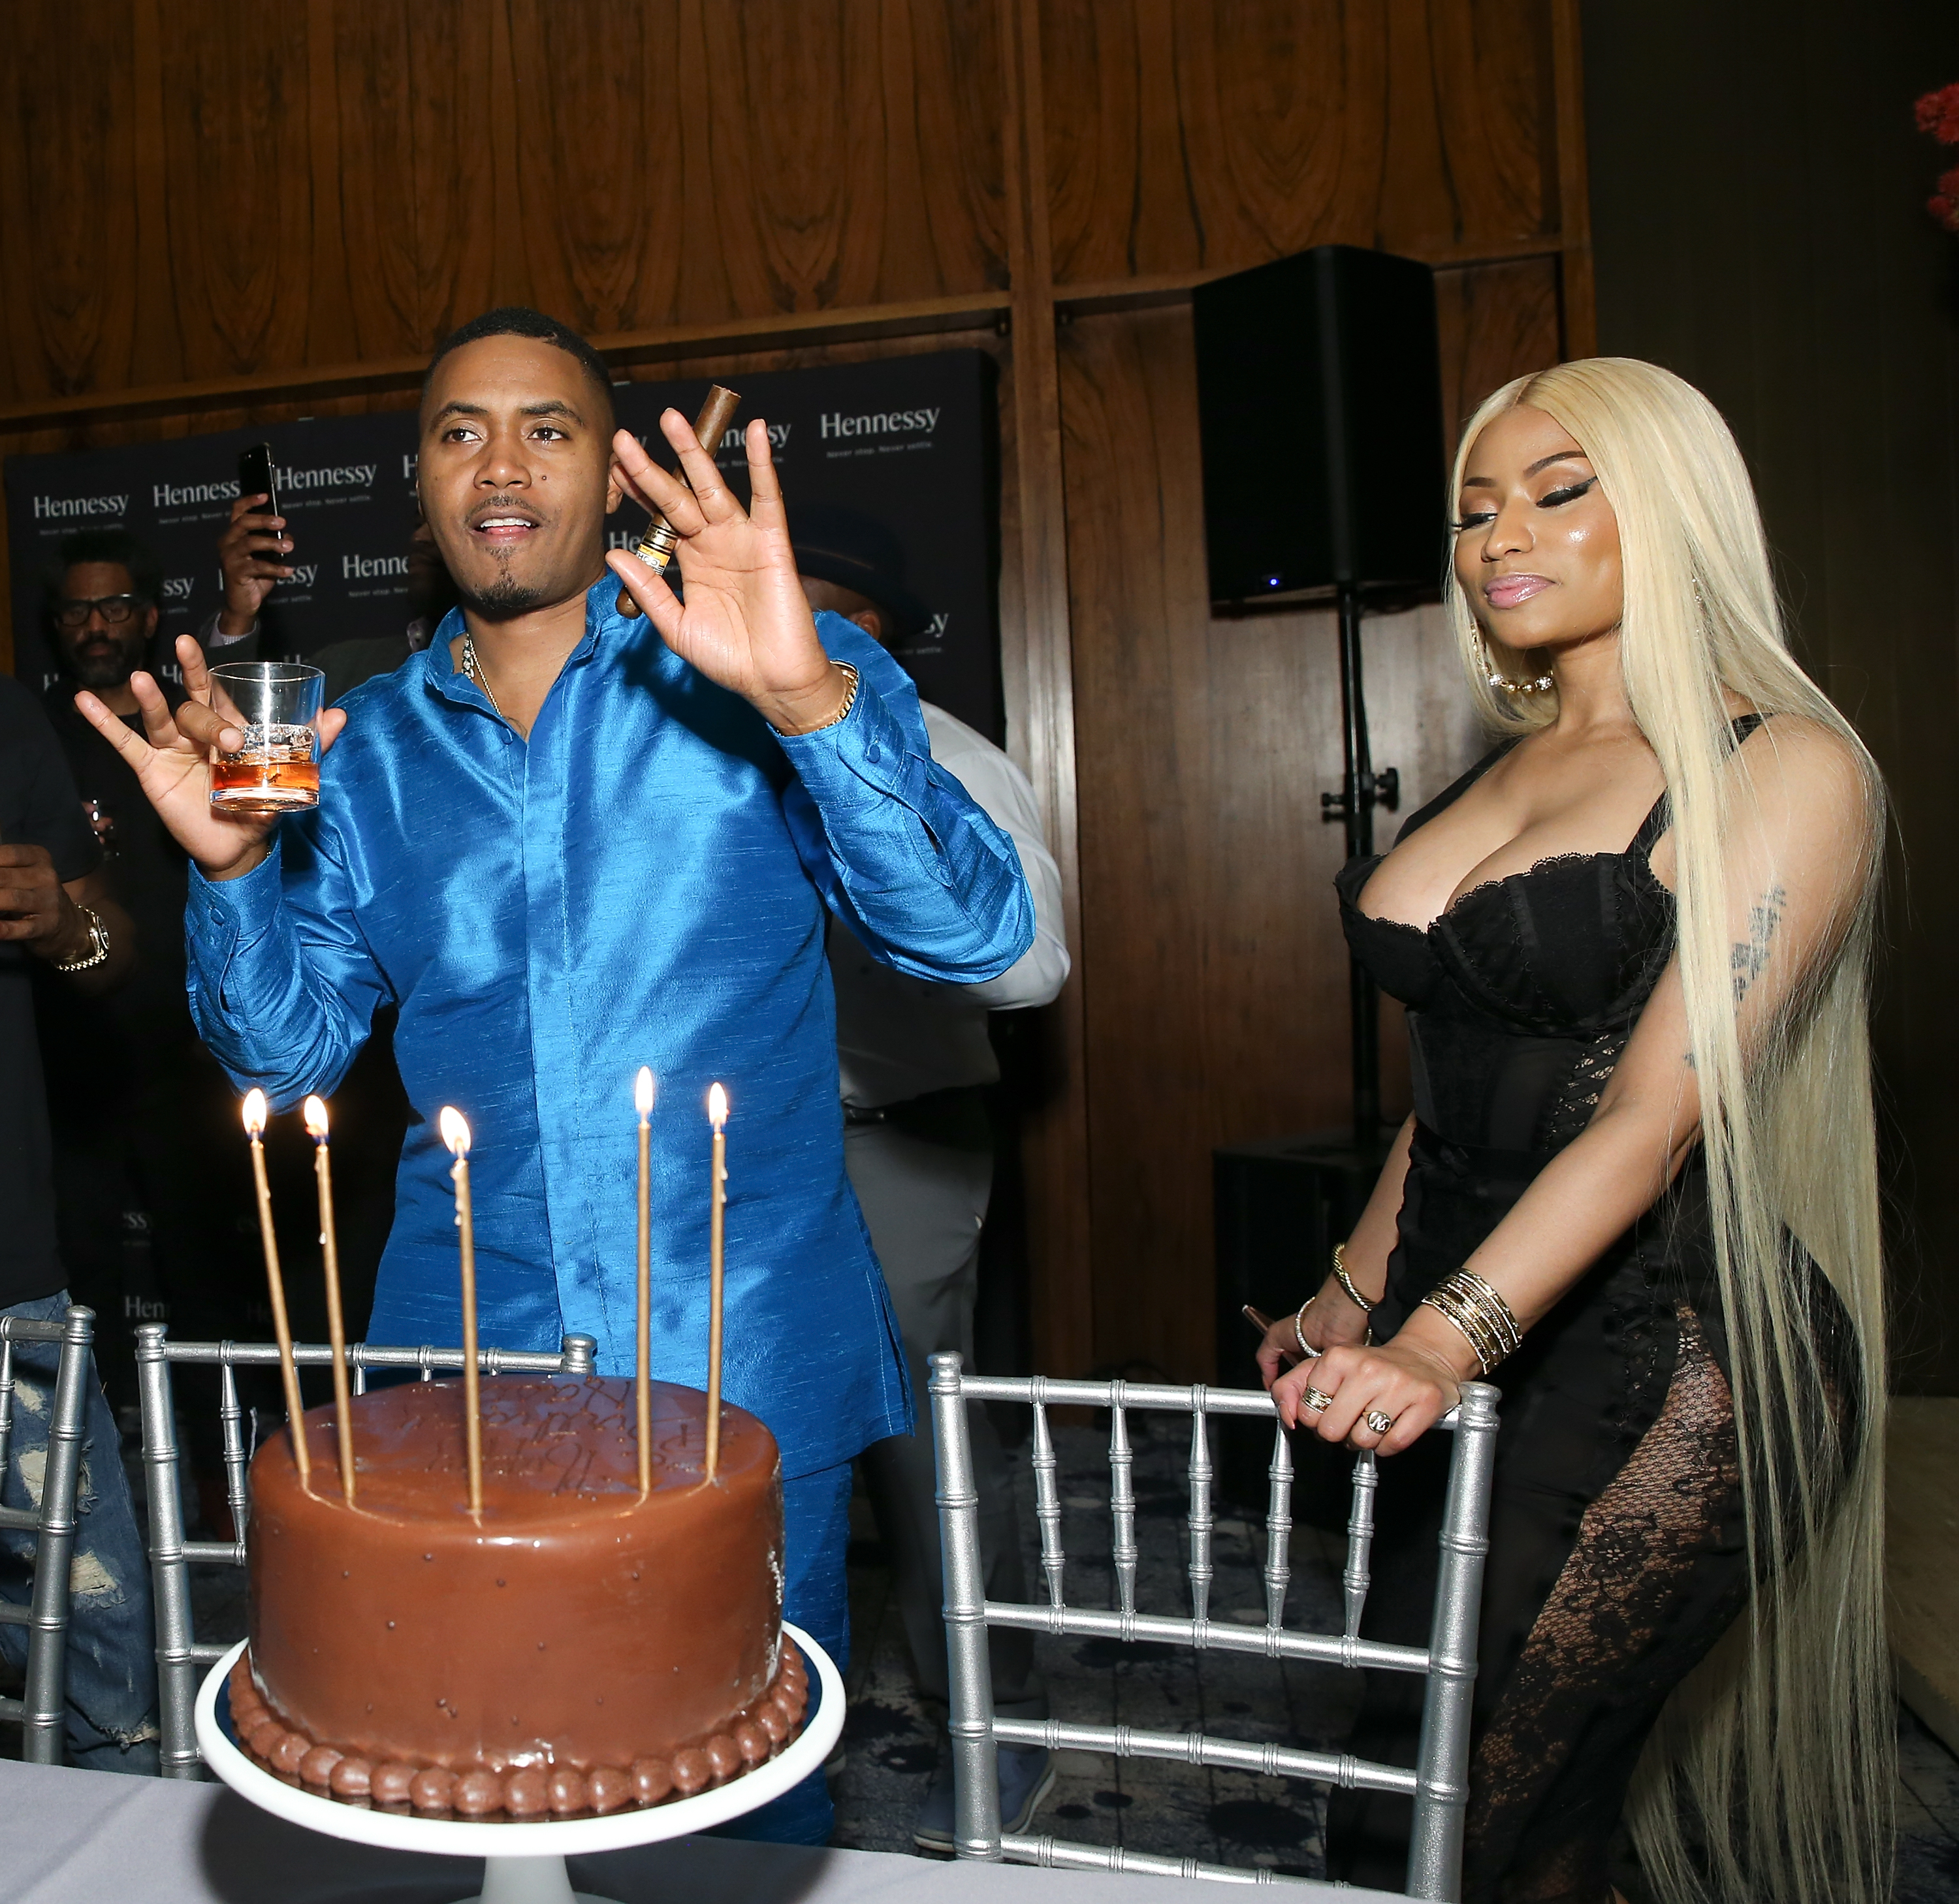 Nas and Nicki Minaj attend his private birthday dinner at The Pool Lounge in New York City on Sept. 13, 2017.